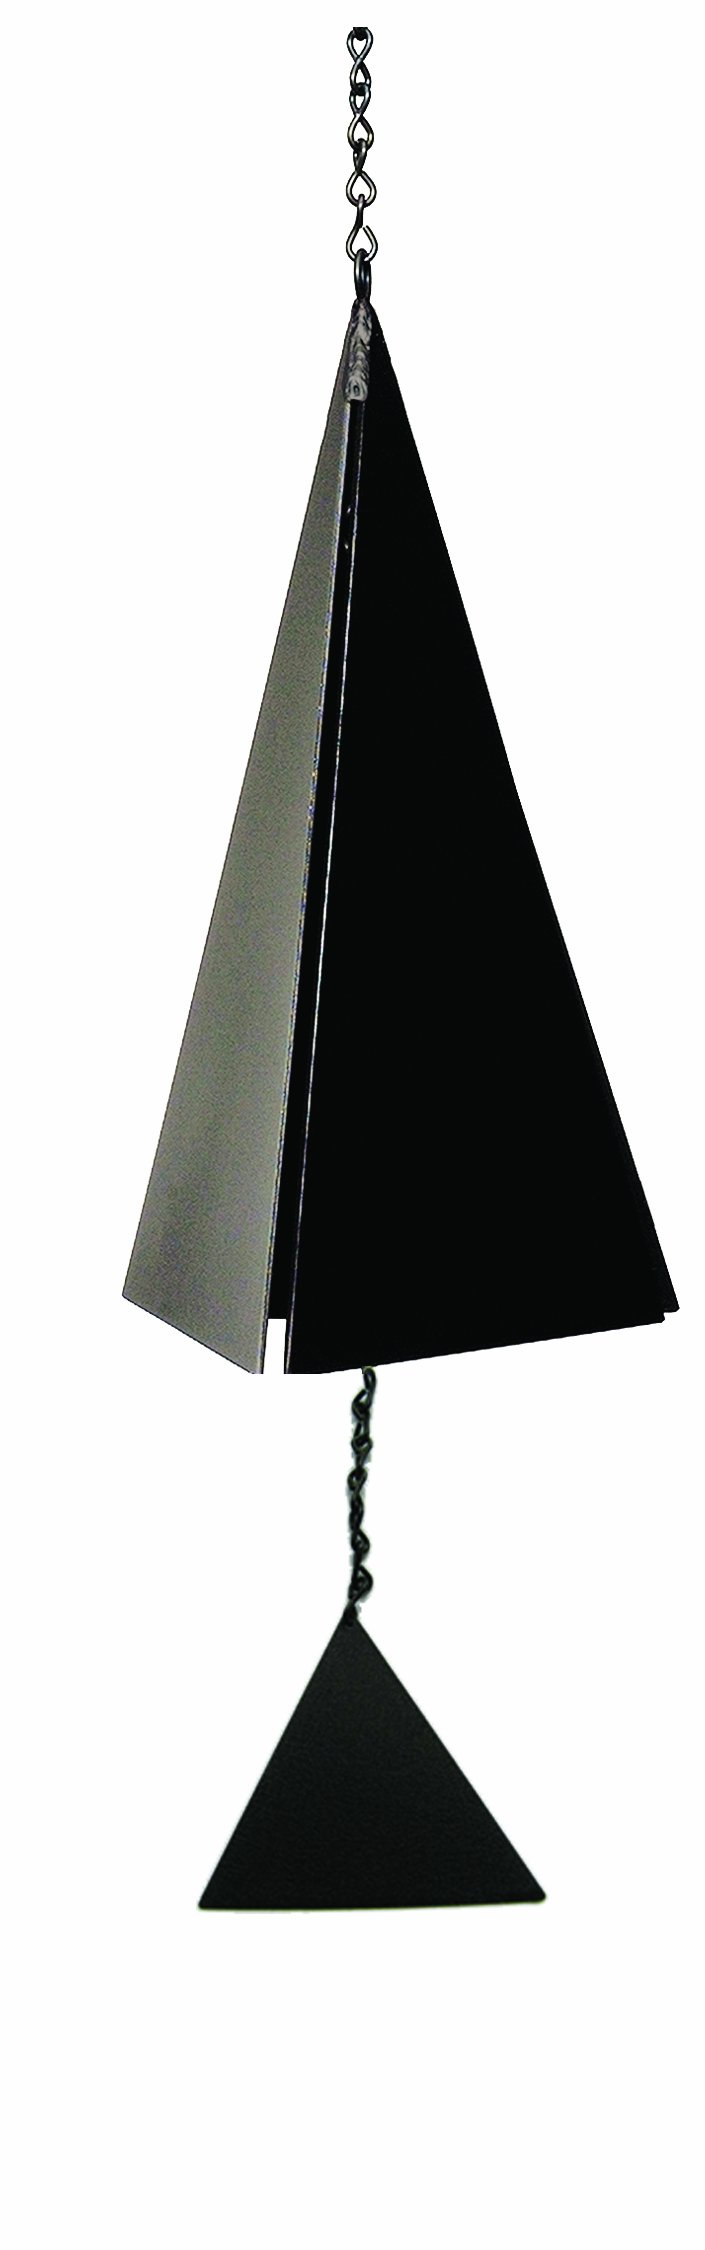 North Country Wind Bells Nantucket Bell Windcatcher with Black Triangle